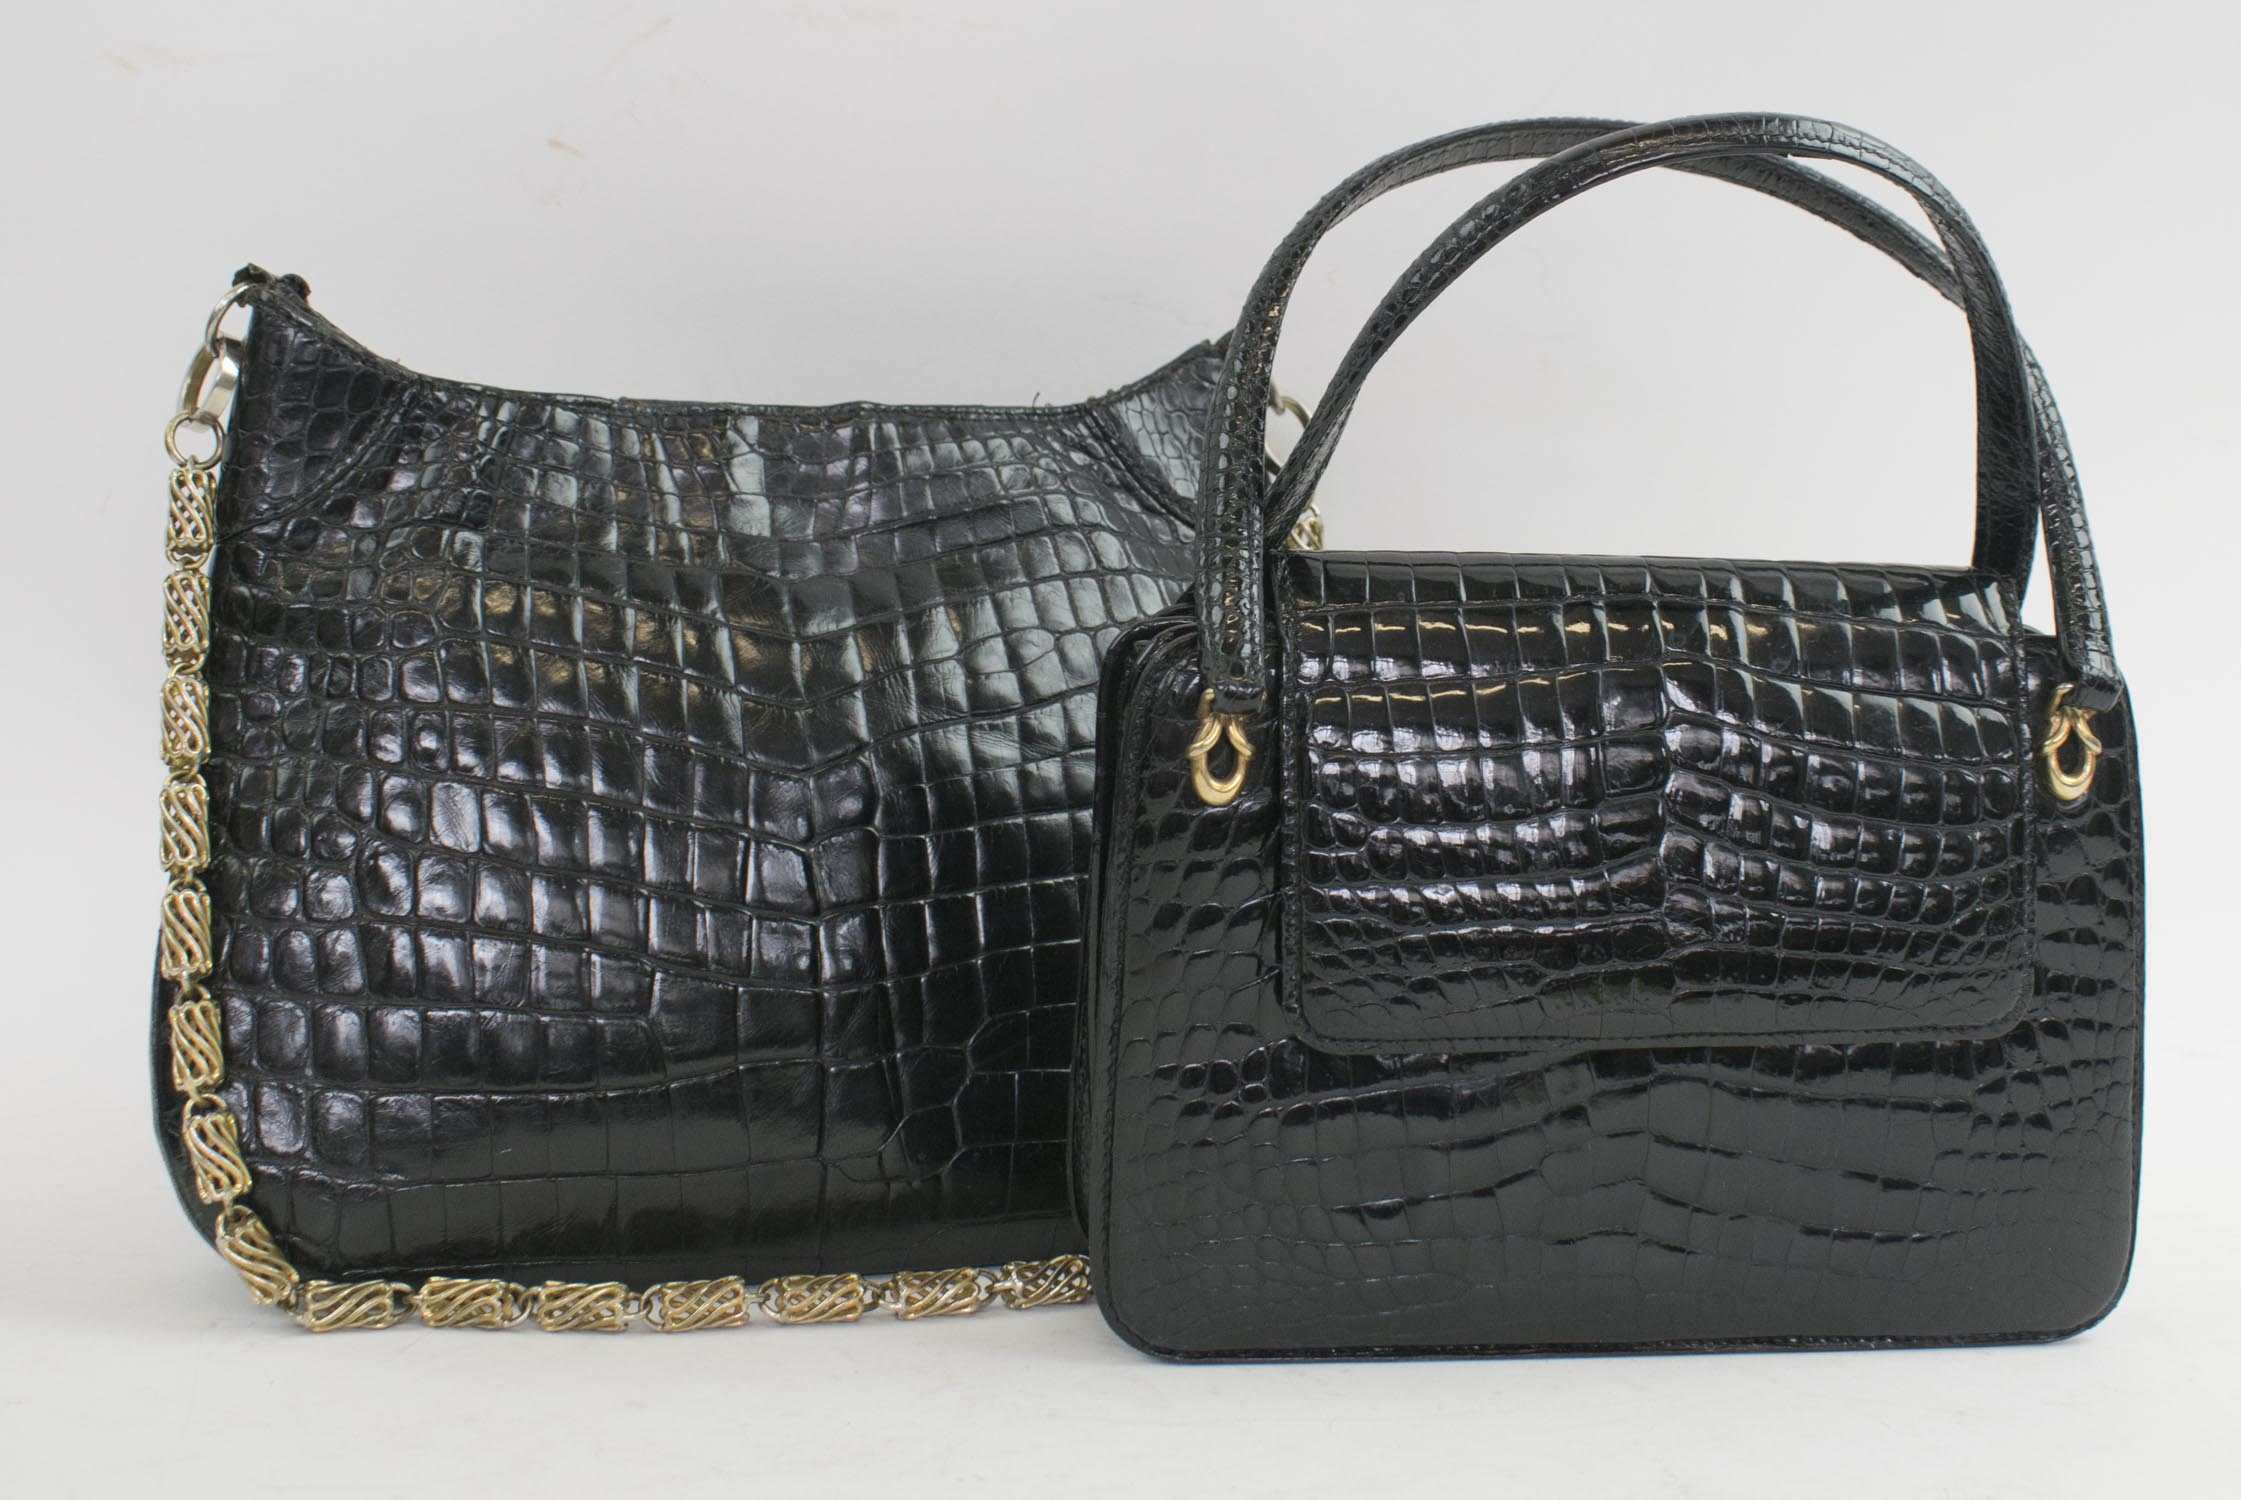 ab40db525fb7 GUCCI VINTAGE CROCODILE BAGS, one with two top handles and flap ...